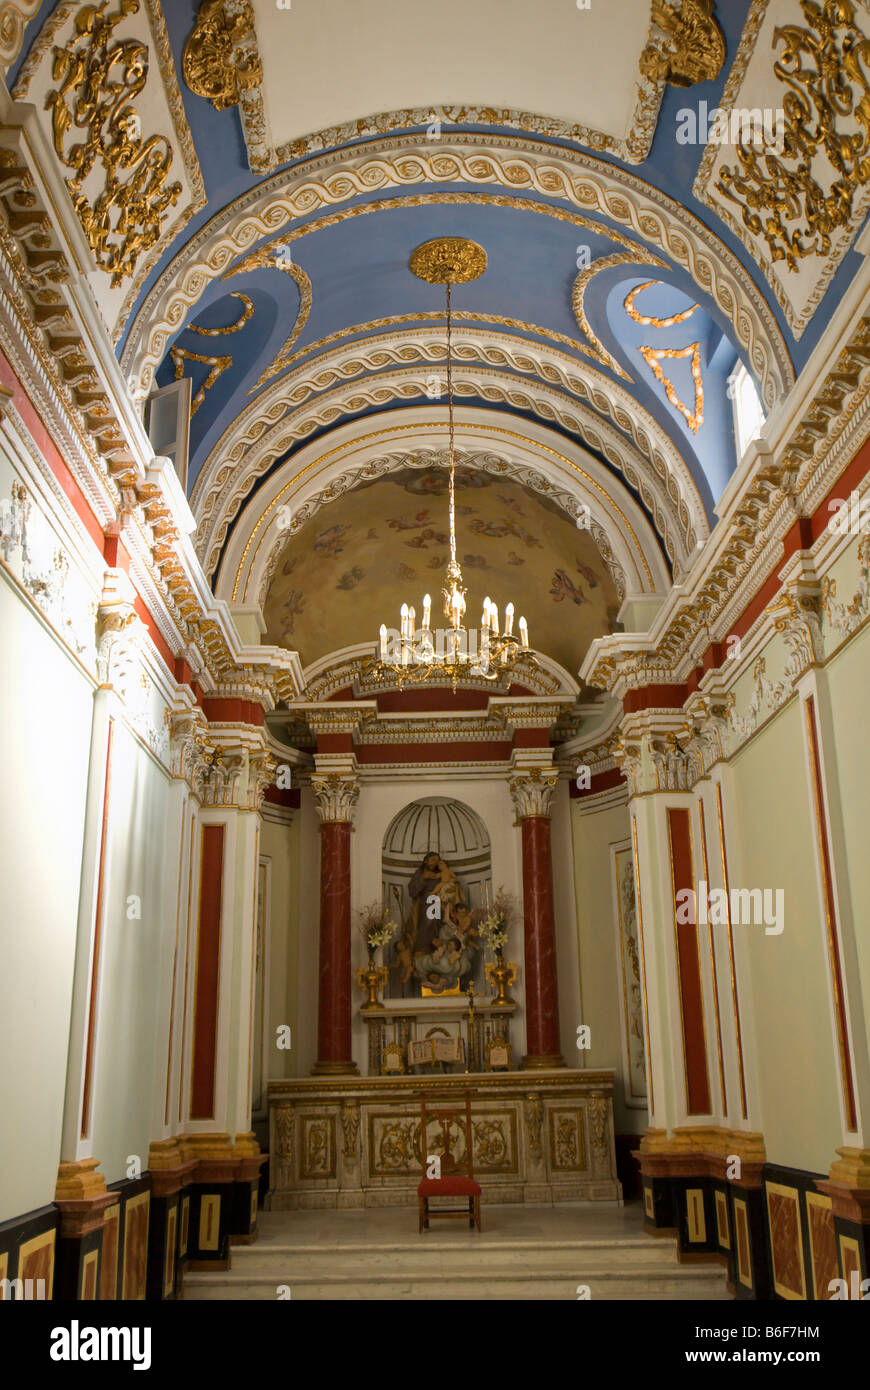 Neoclassical chapel inside the City Museum of Valencia building Spain Museo de la Ciudad - Stock Image